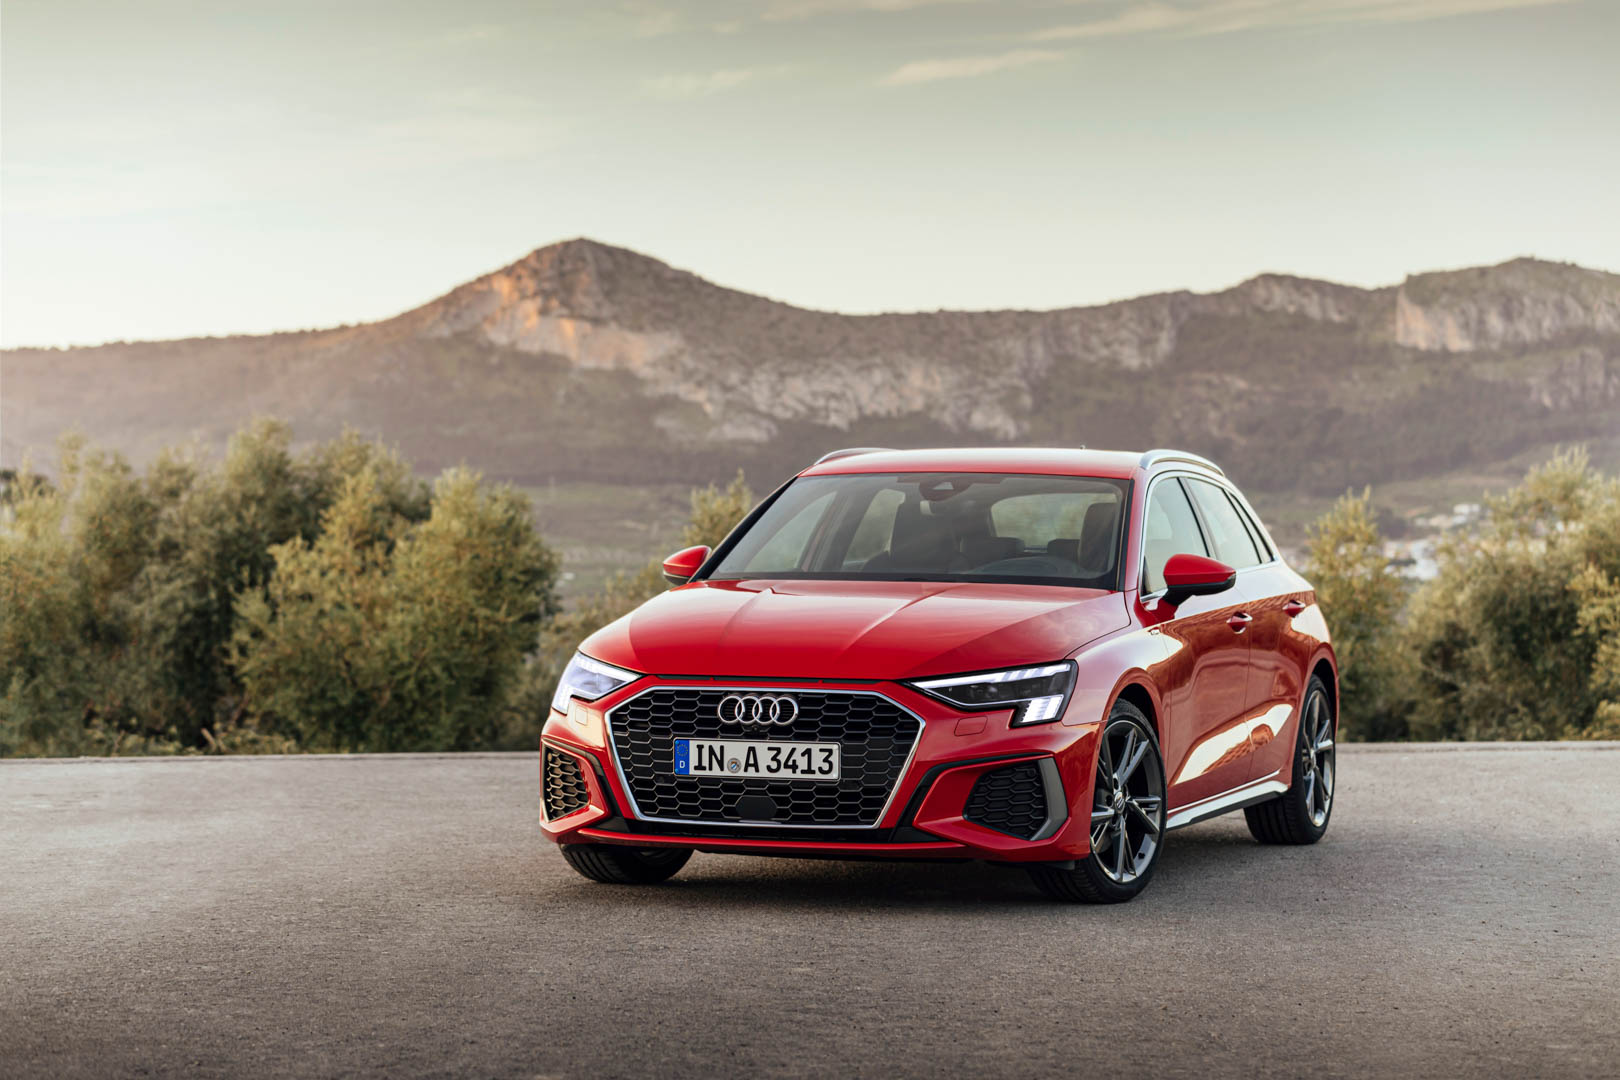 Check out the 2020 Audi A3 Sportback in New Photo Gallery